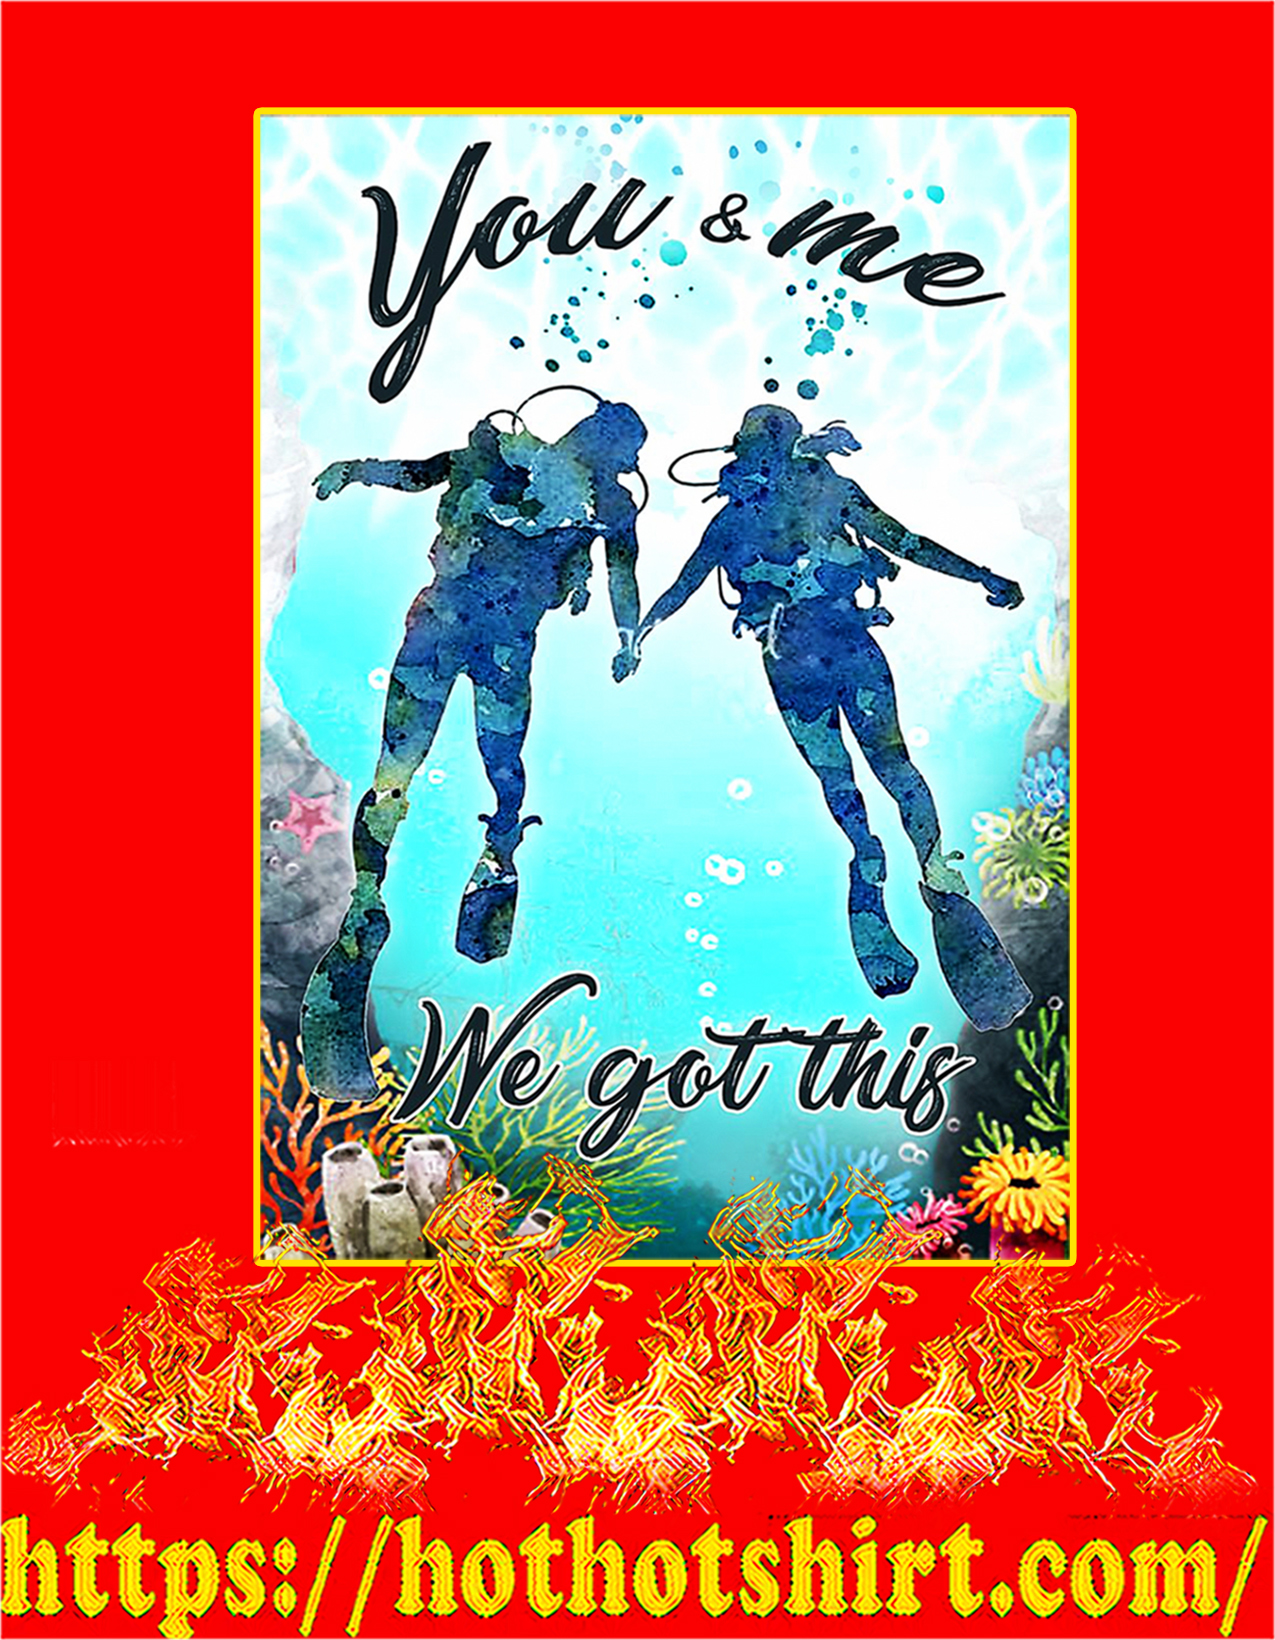 Scuba you and me we got this poster - A2